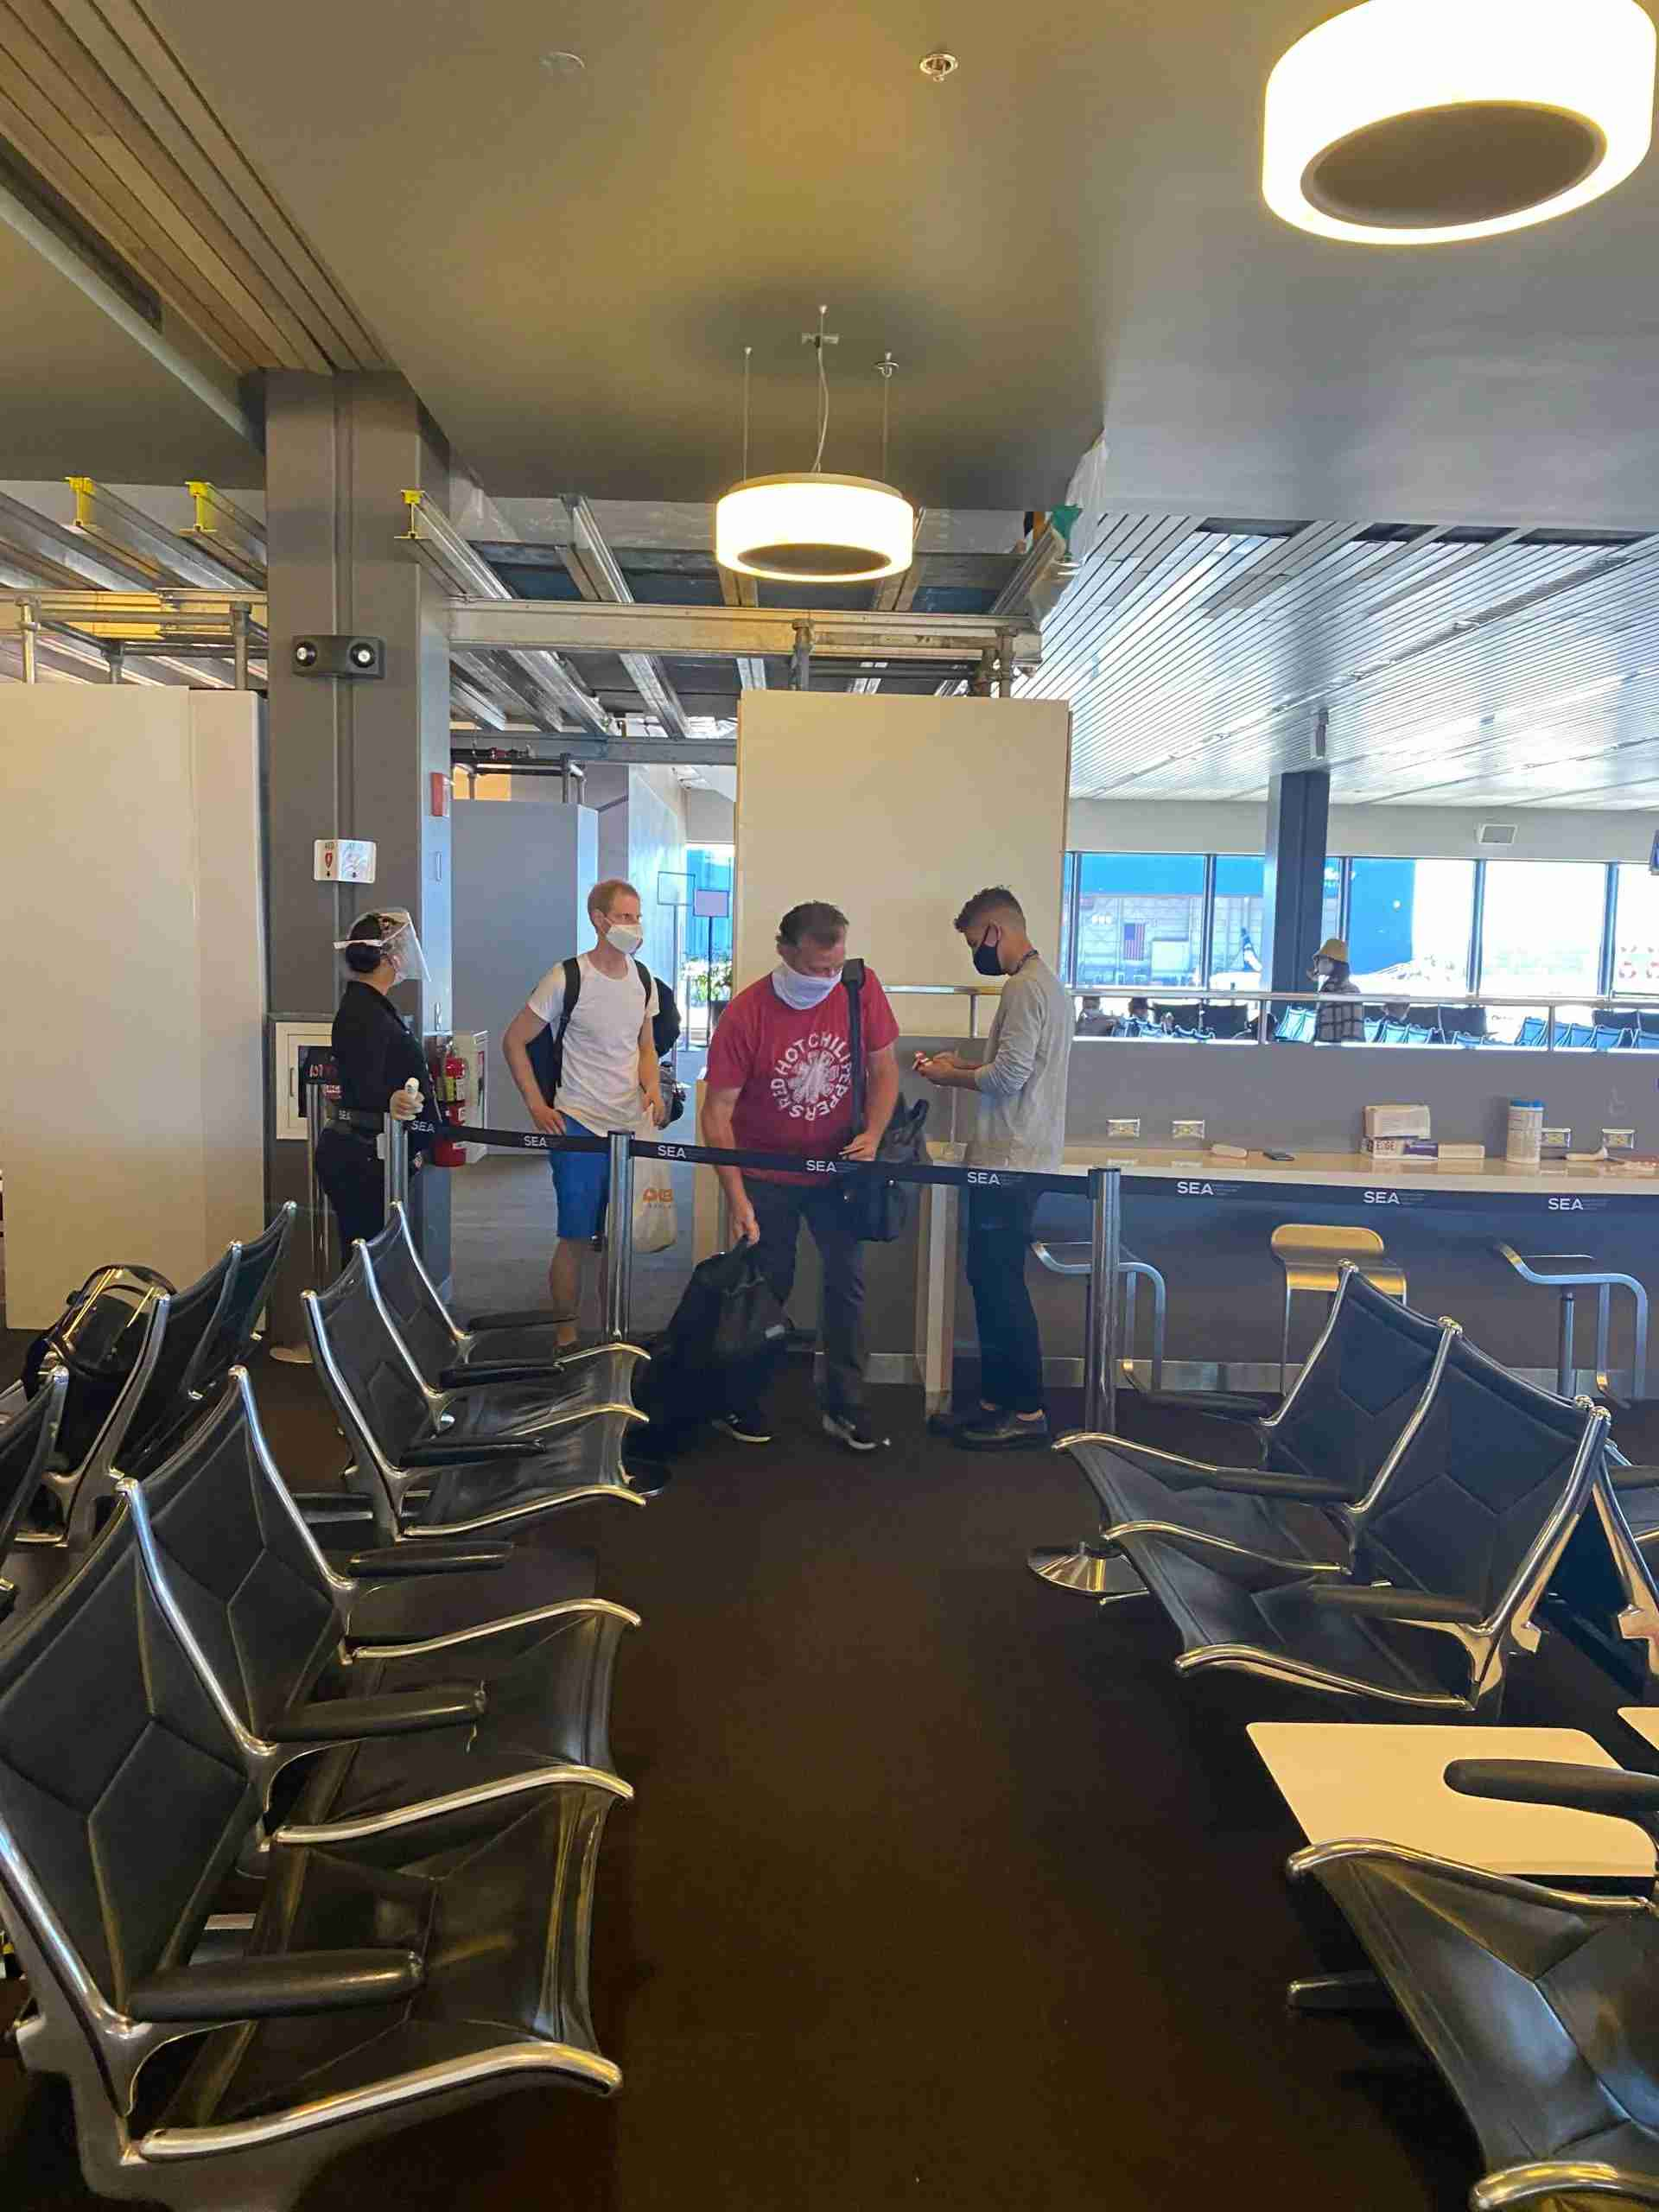 Temperature checks being conducted at Seattle for Incheon-bound flight on Delta